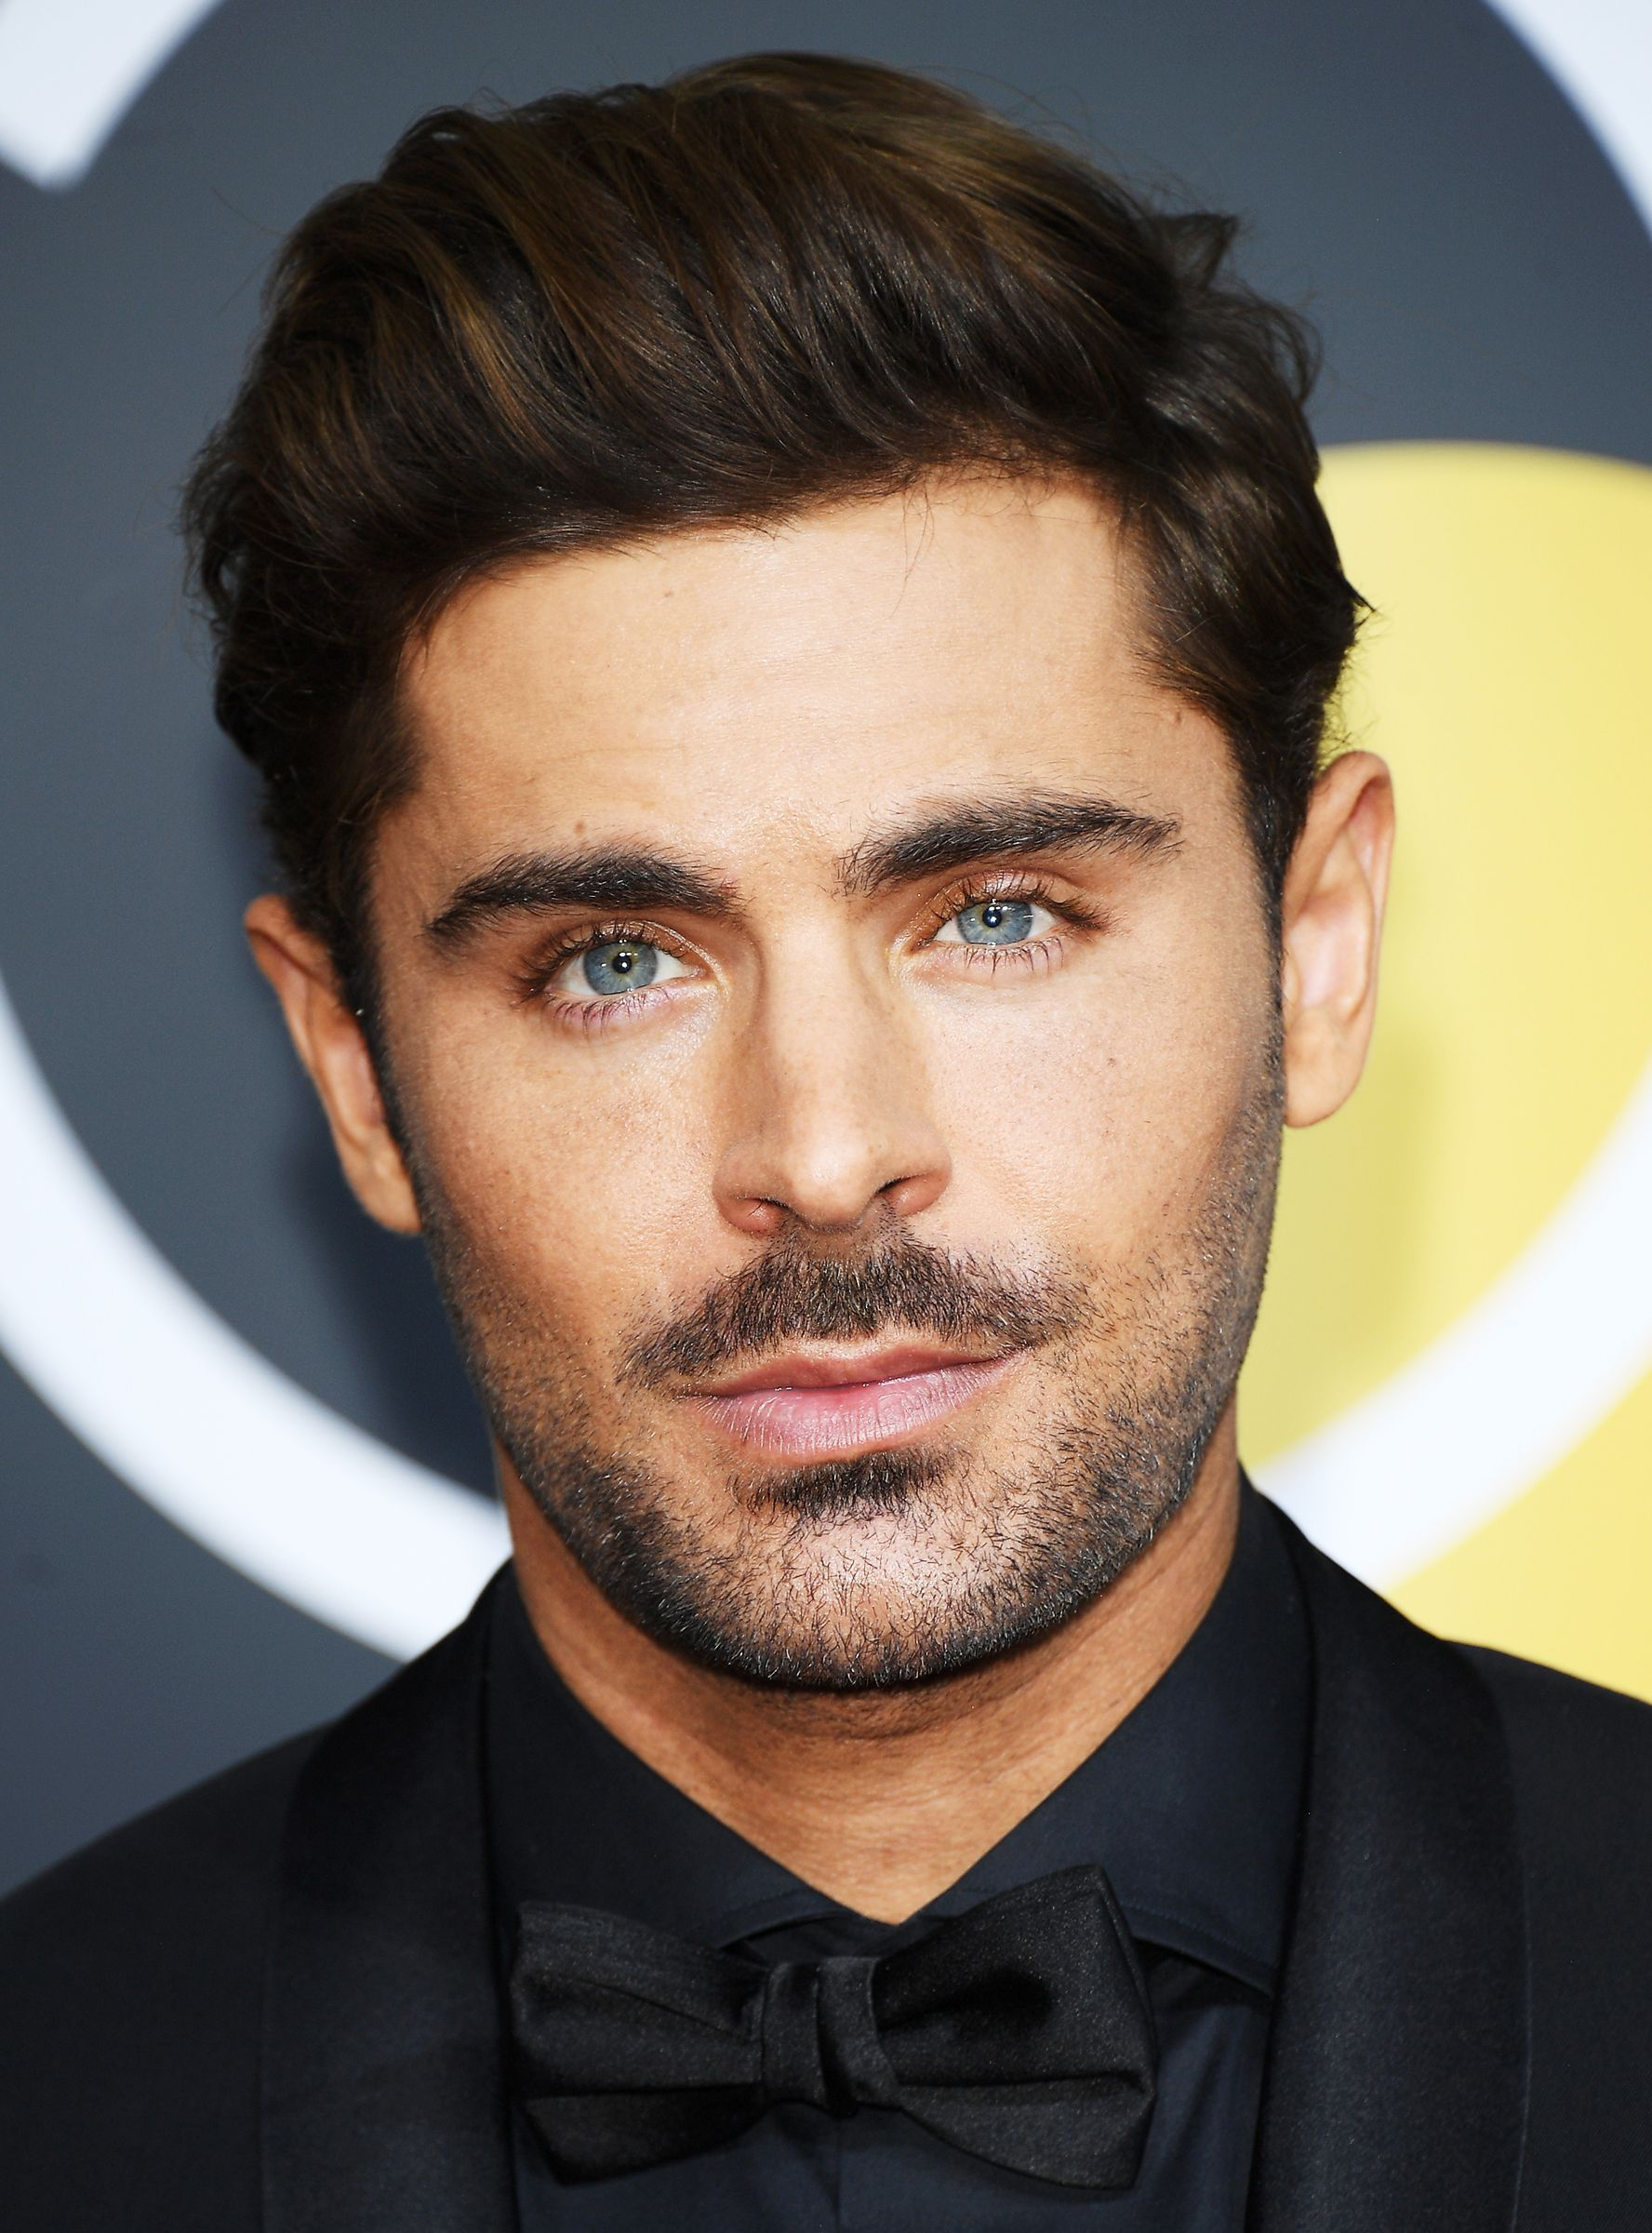 Why Does Zac Efron Look Like A Panini In These Photos From The Zac Efron Hair Top Hairstyles For Men Zac Efron Eyes